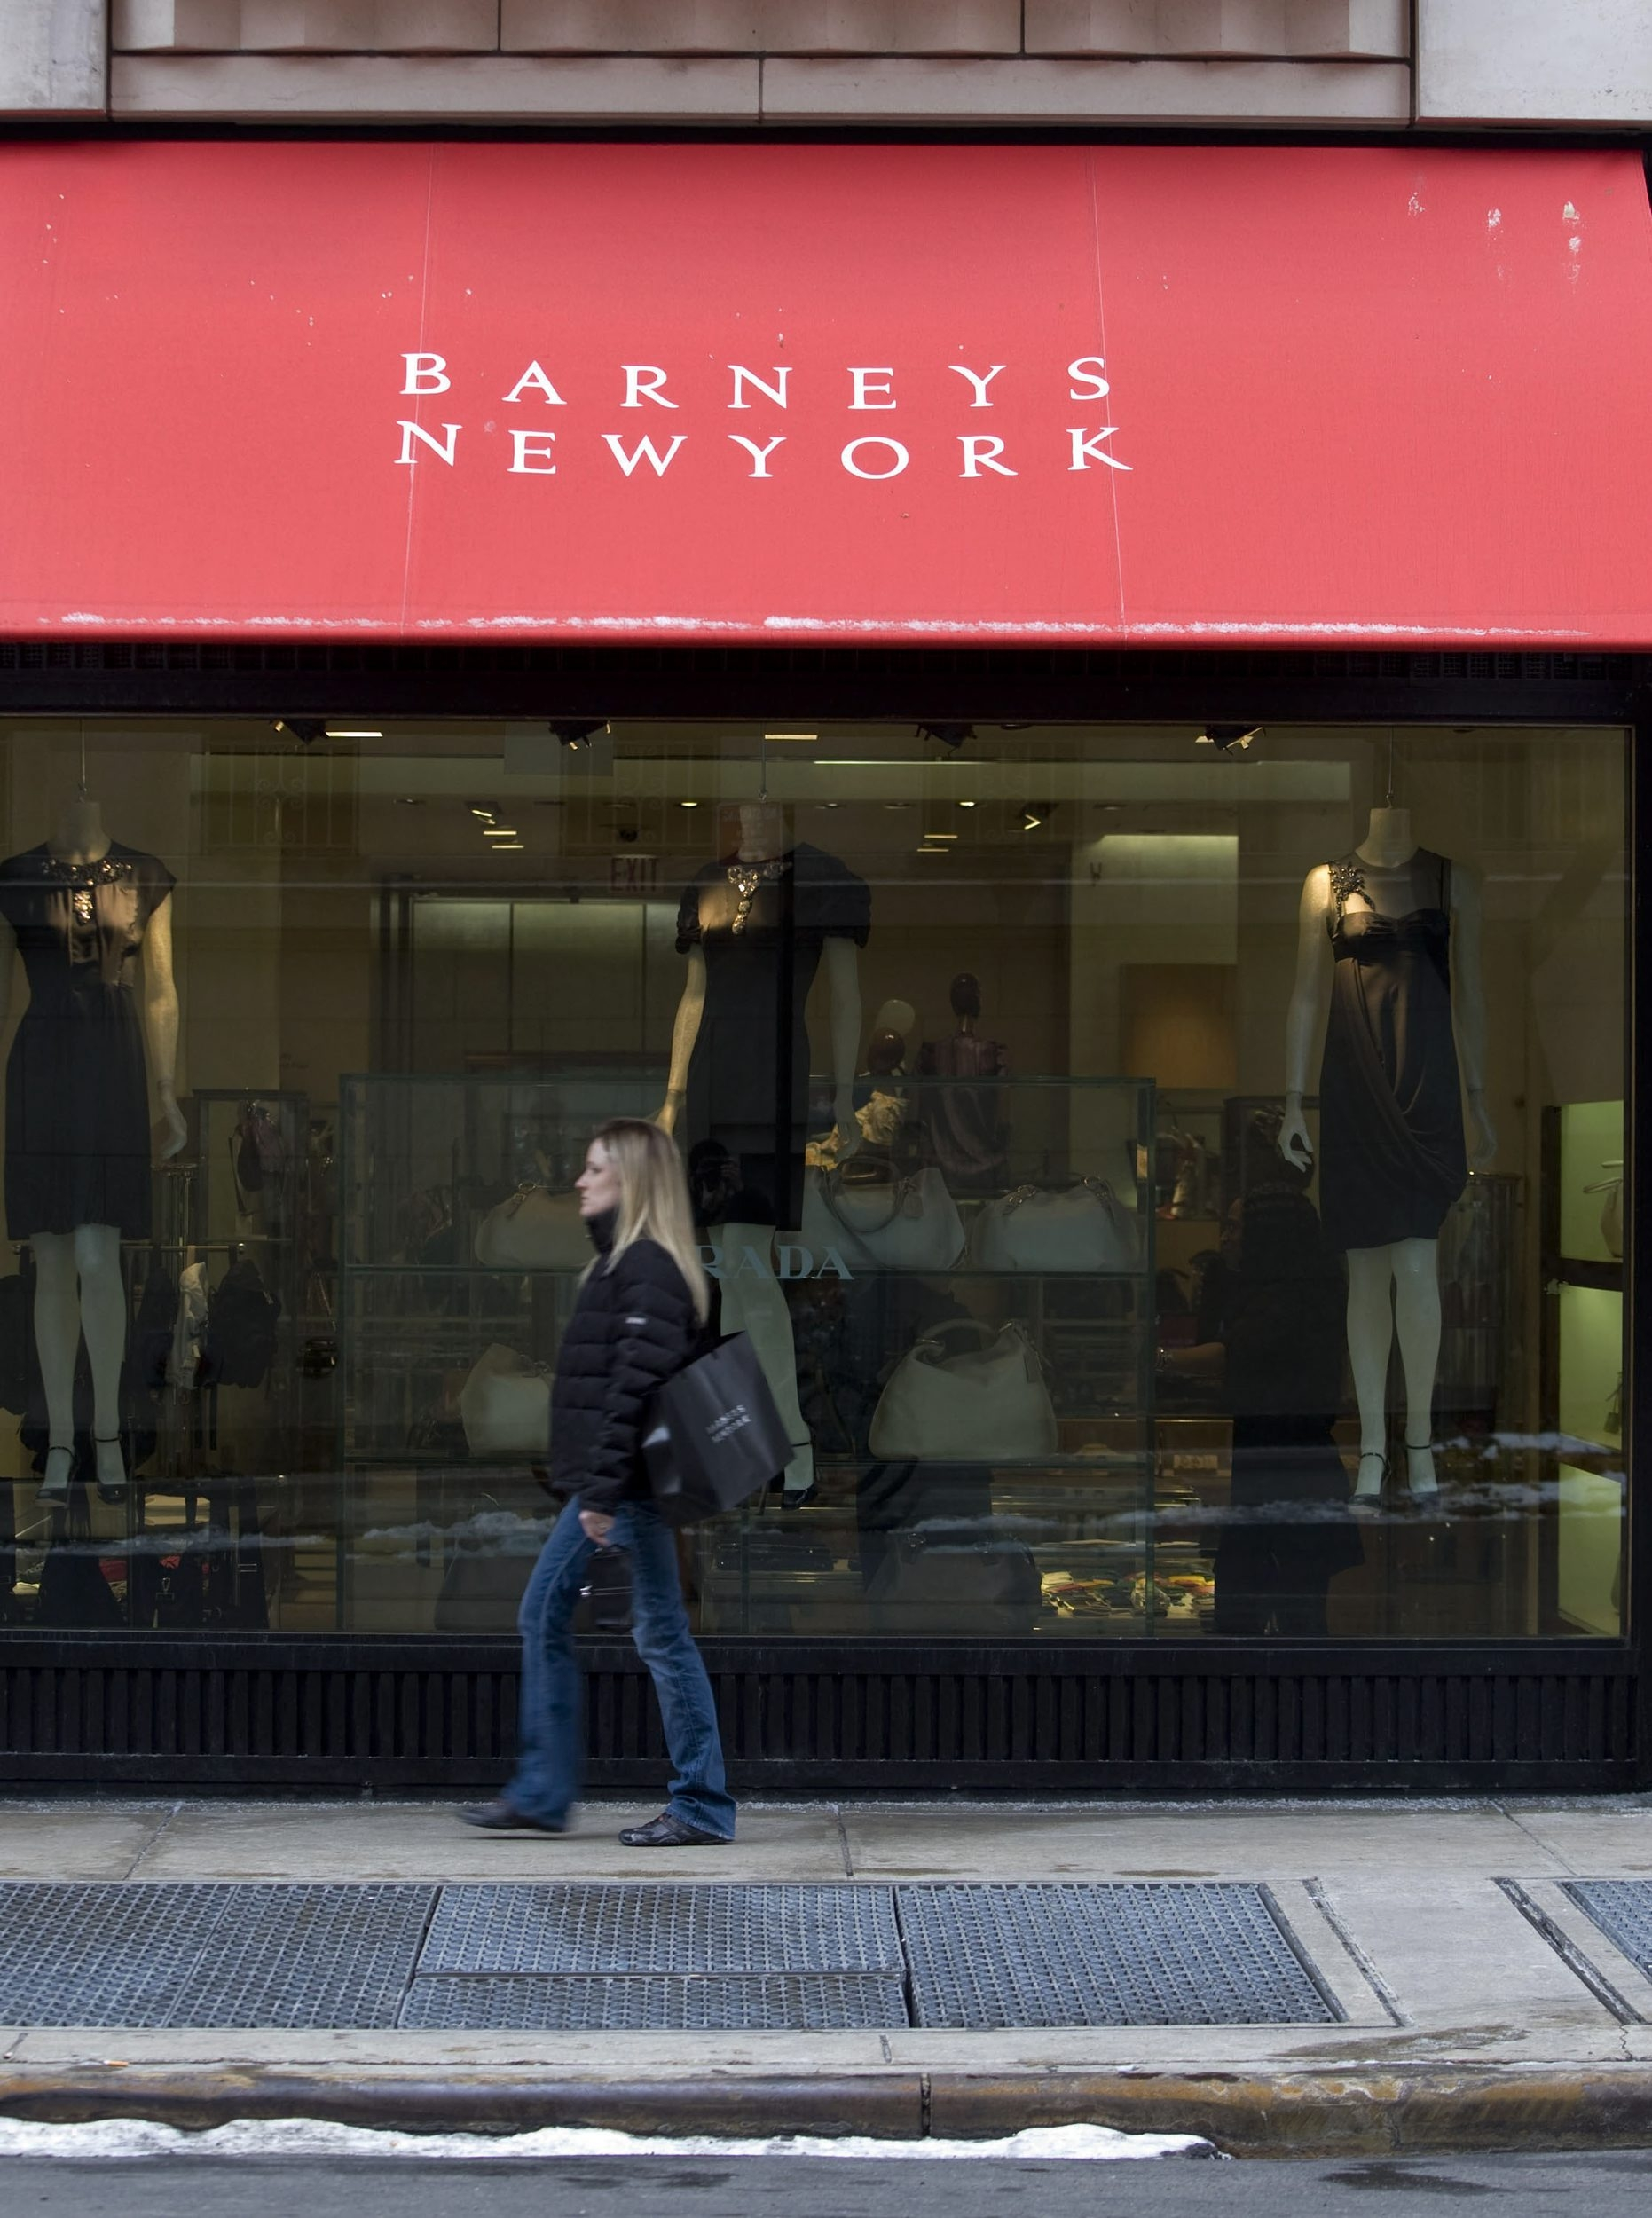 Barneys store in Manhattan was focus of lawsuit that led to settle- ment including policy reforms.